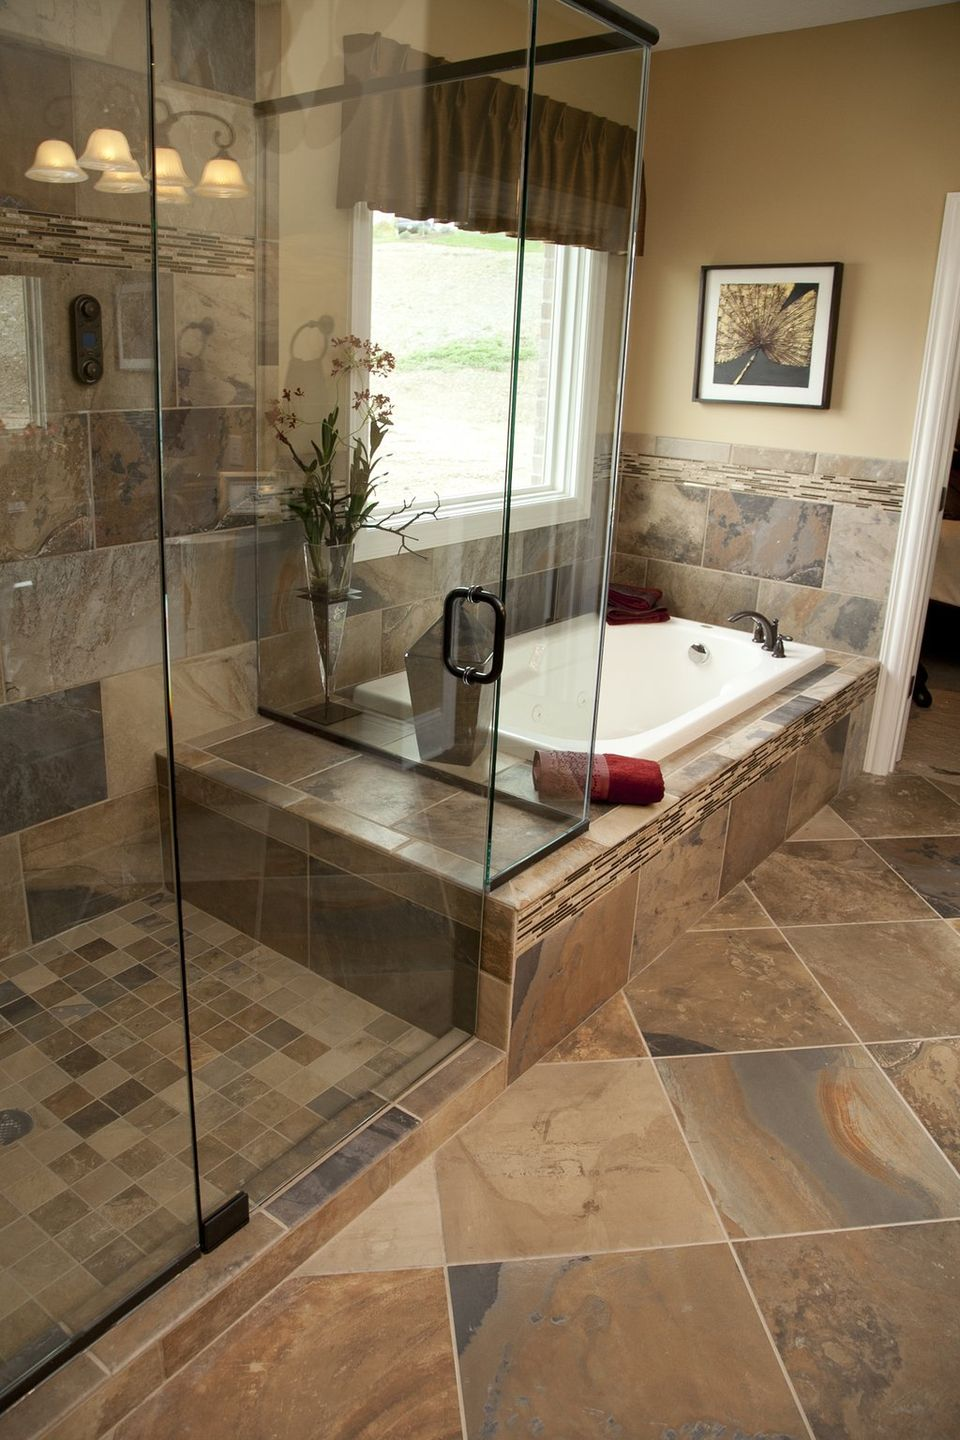 33 stunning pictures and ideas of natural stone bathroom for Bathtub ideas